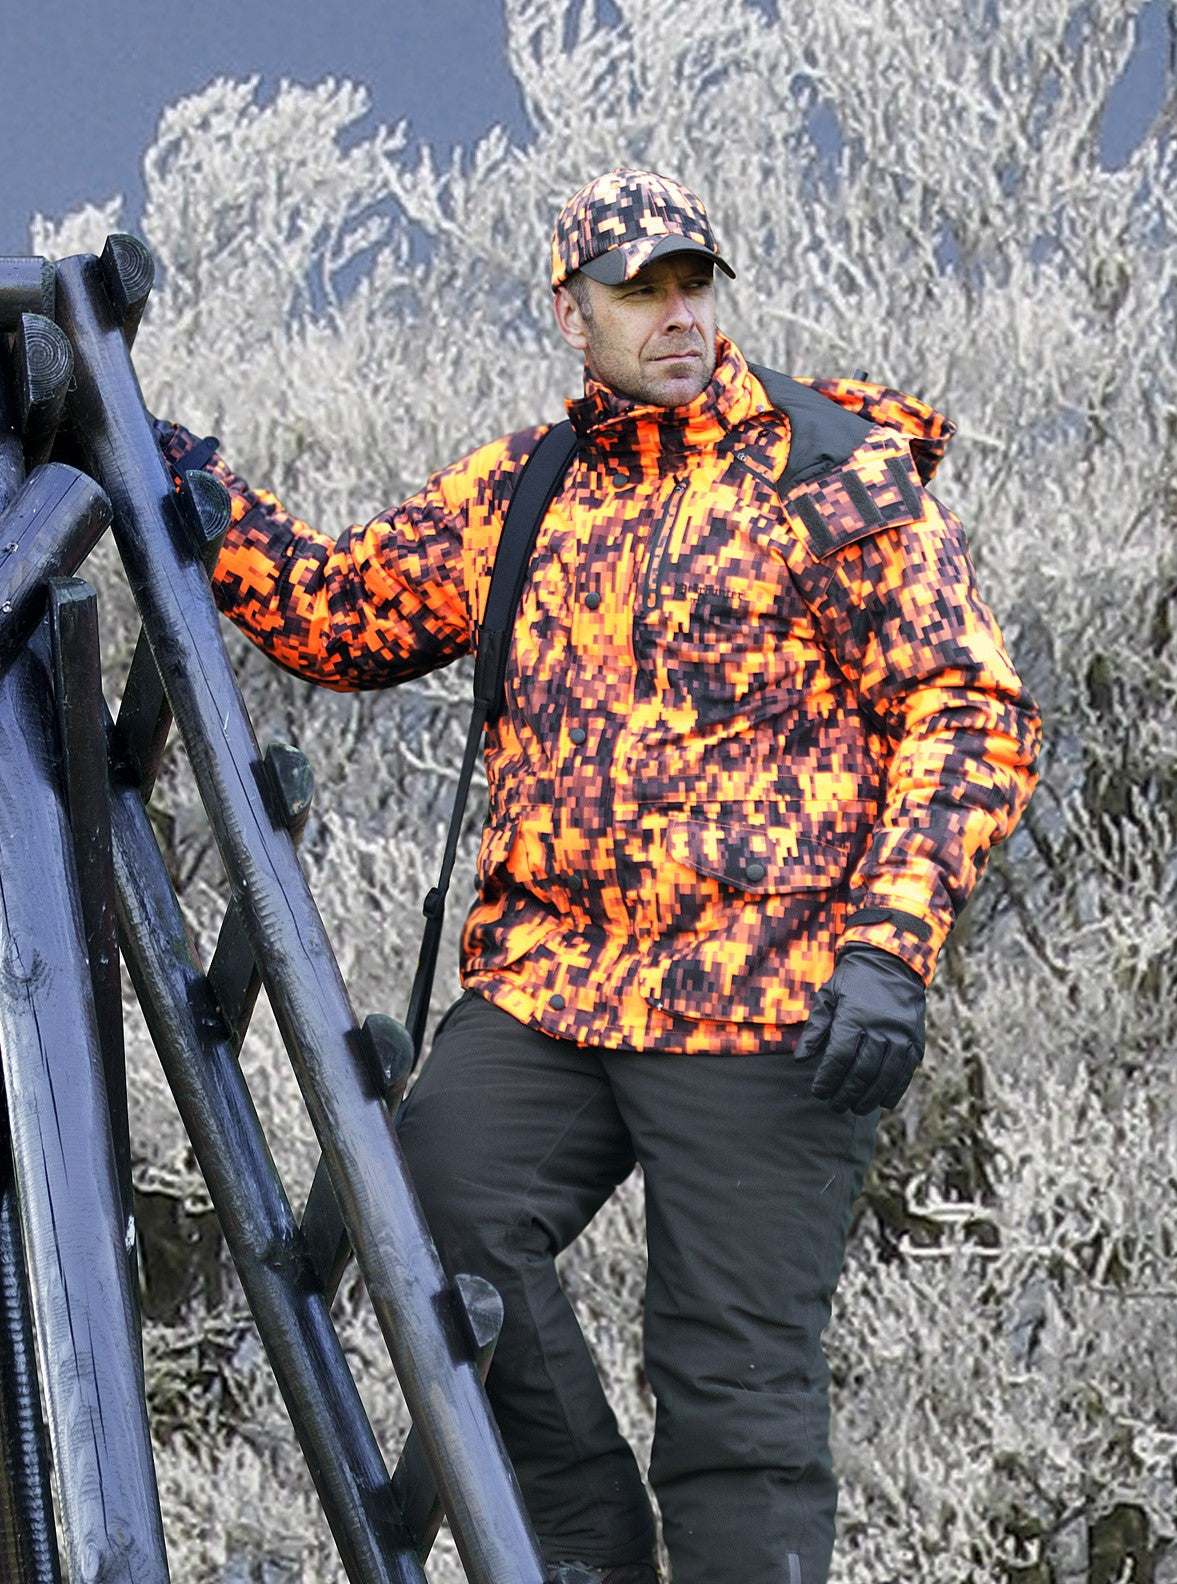 man up ladder Deerhunter Recon Arctic Jacket